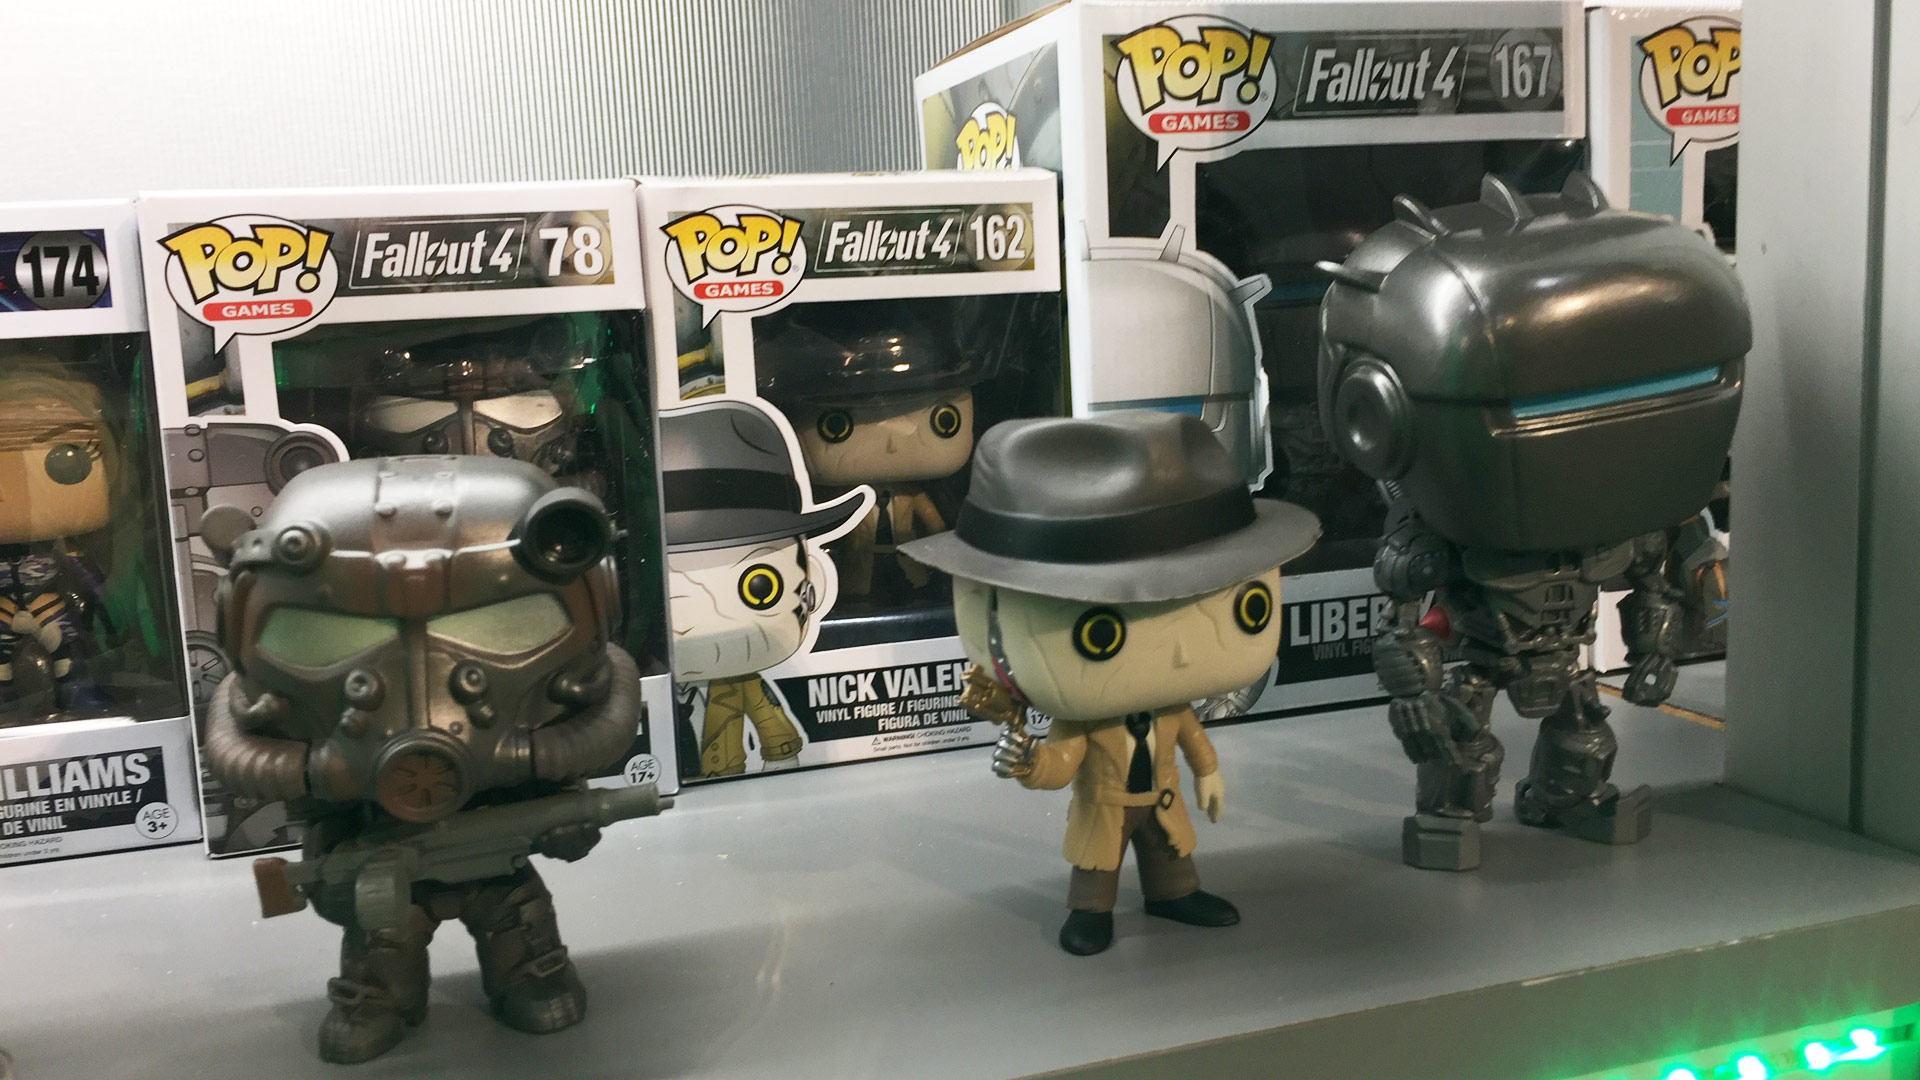 Funko Pop Fallout 4 with T-60 Power Armor #78, Nick Valentine #162, Liberty Prime #167 Vinyl Figures at Toy Fair 2017